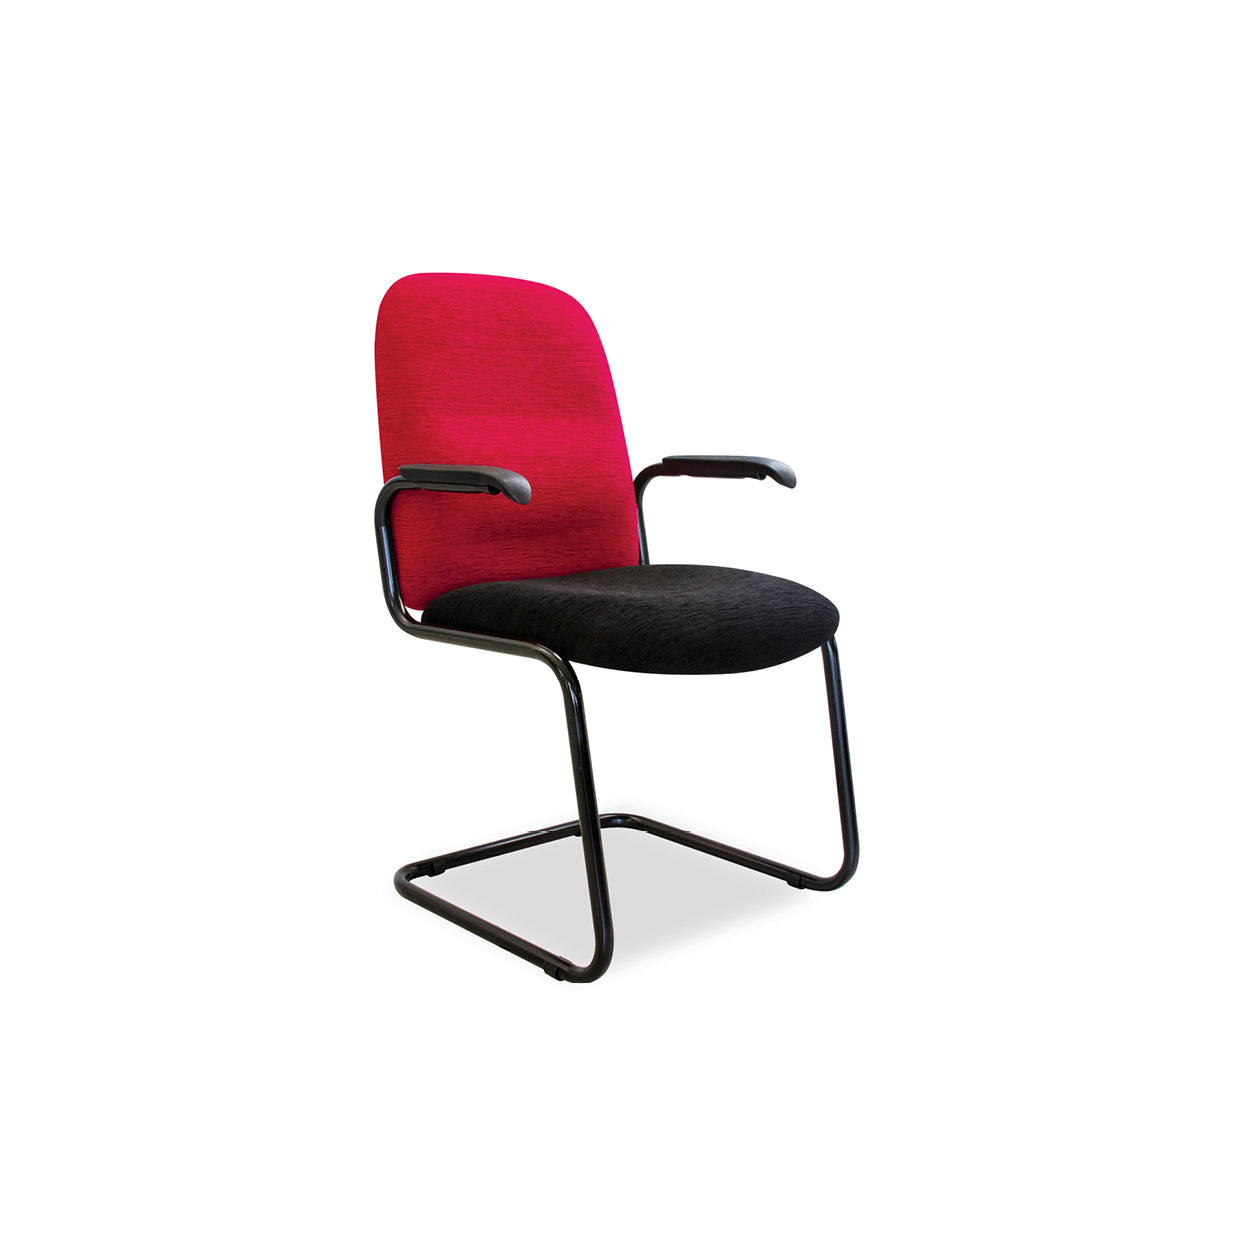 Hedcor visitors chair